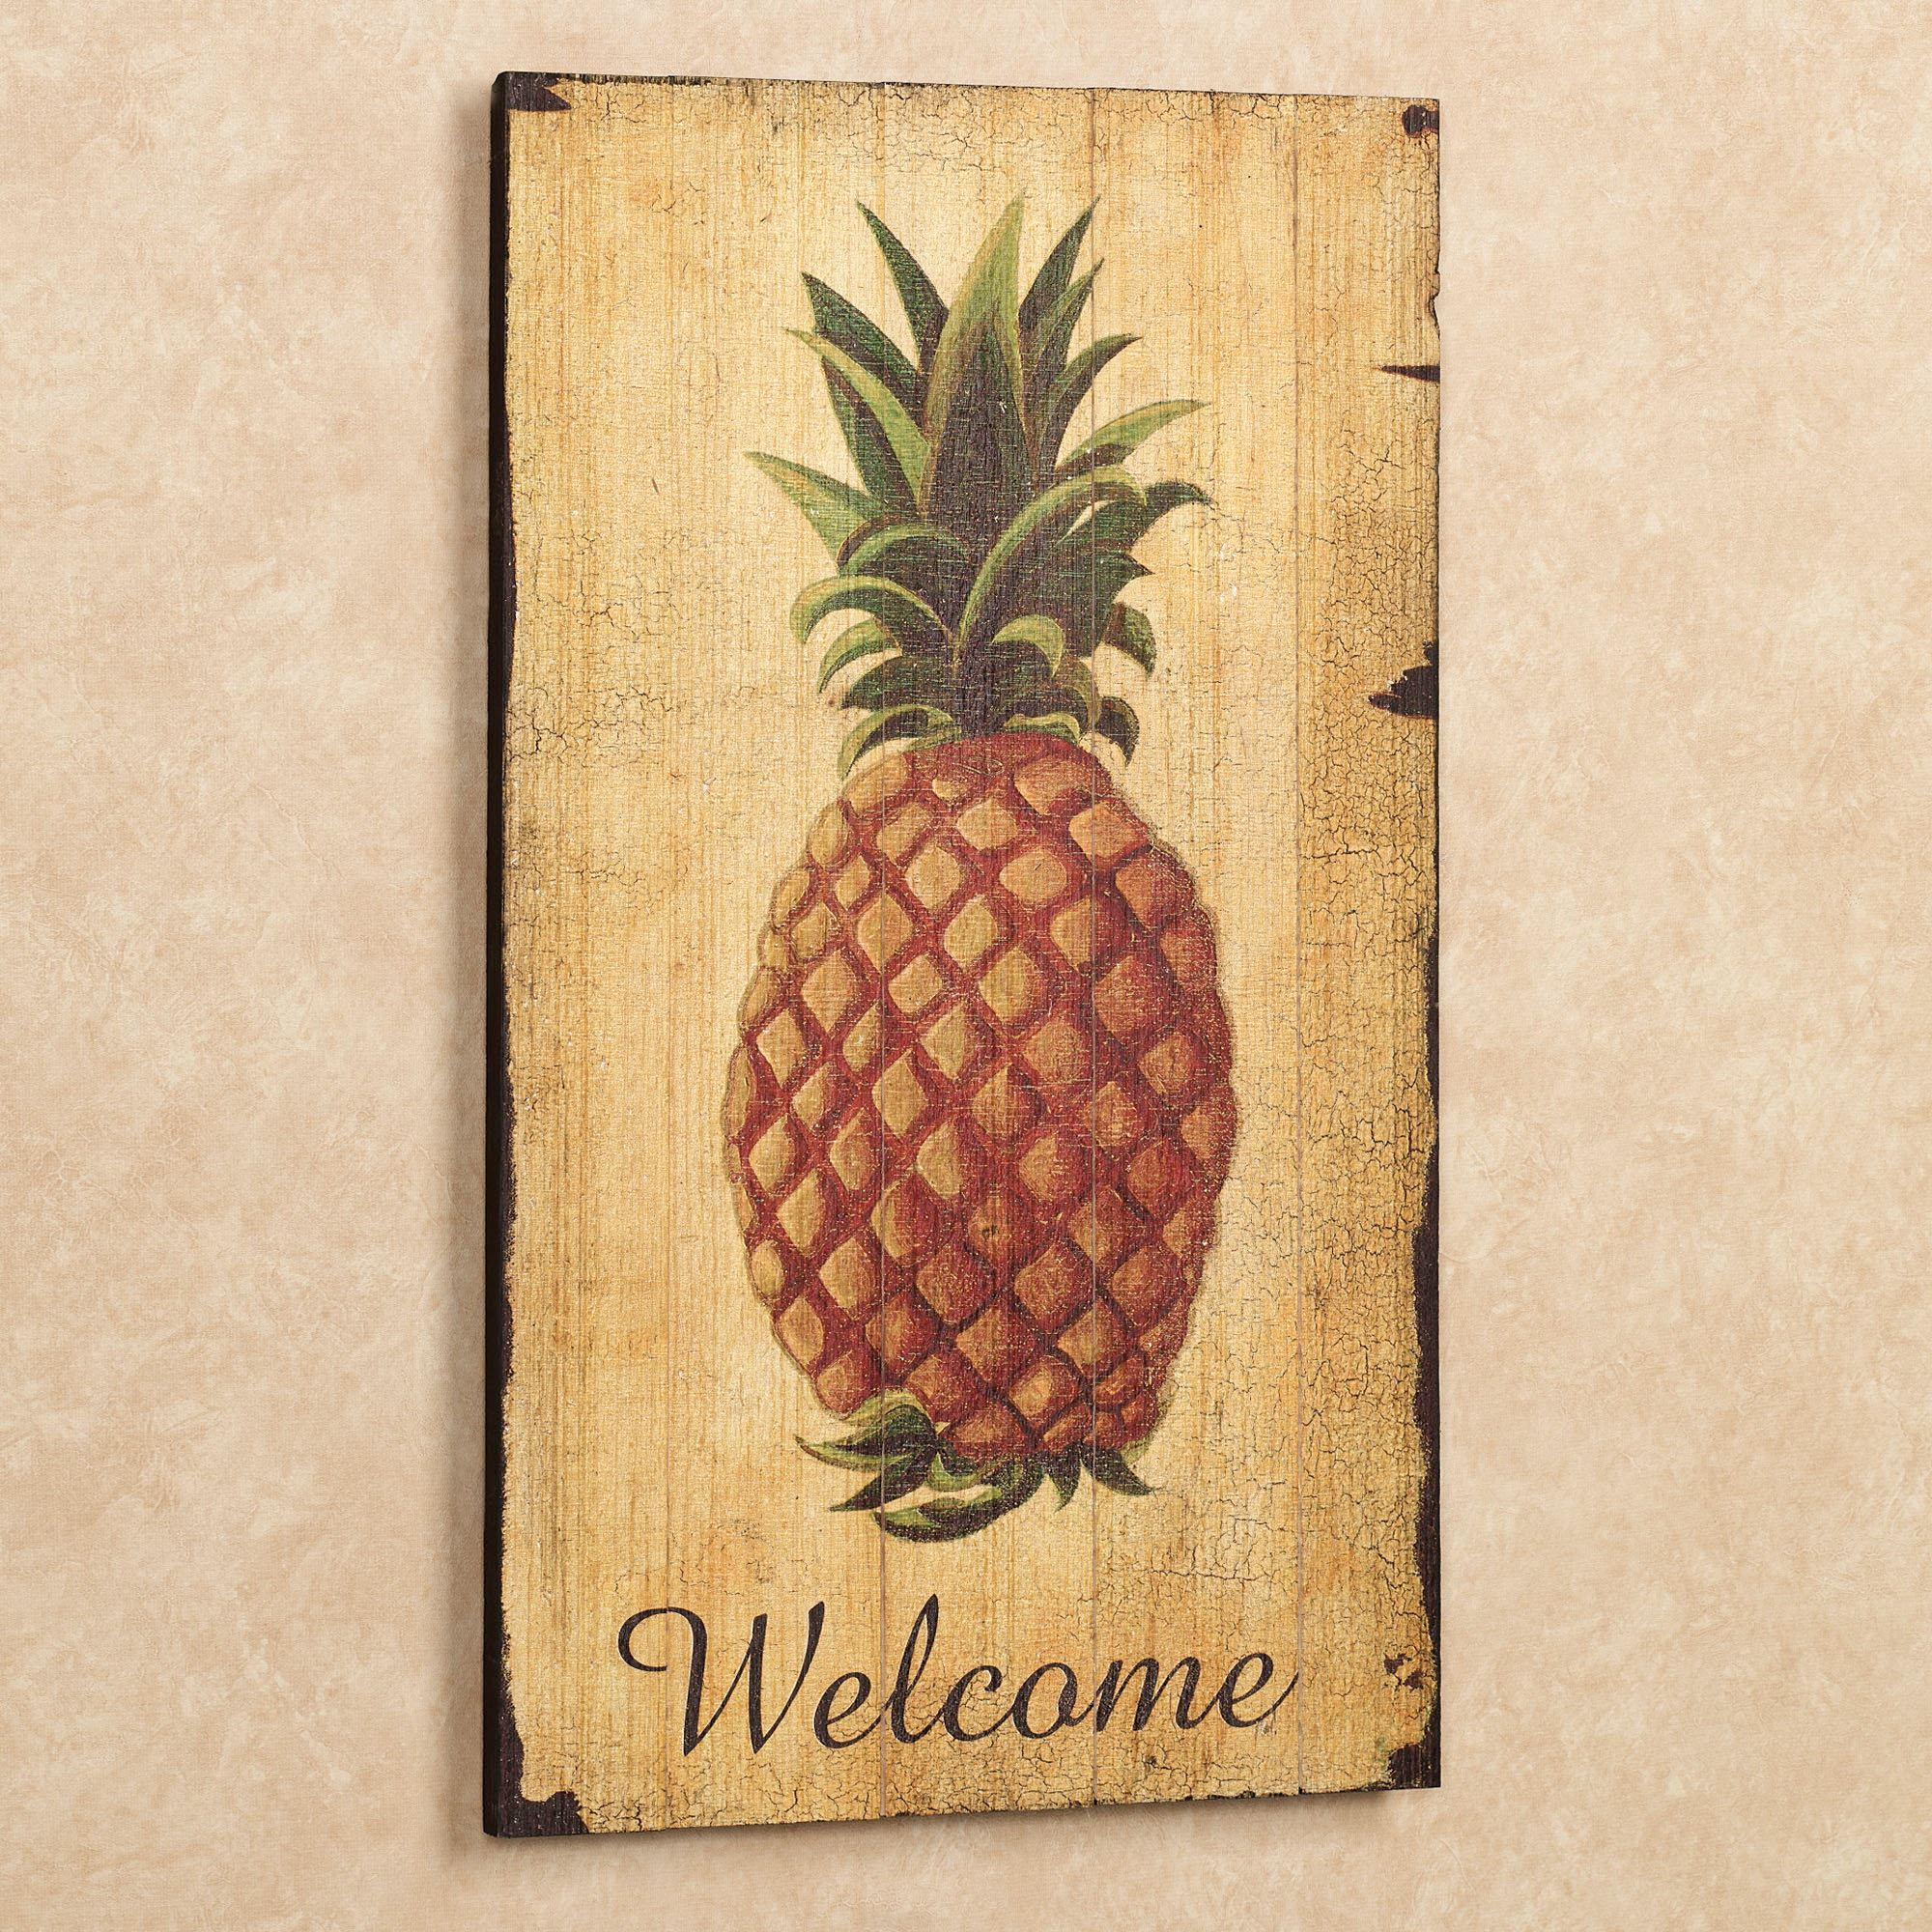 Most Current Pineapple Wall Decor Within Pineapple Vintage Welcome Sign Wall Art (View 10 of 20)